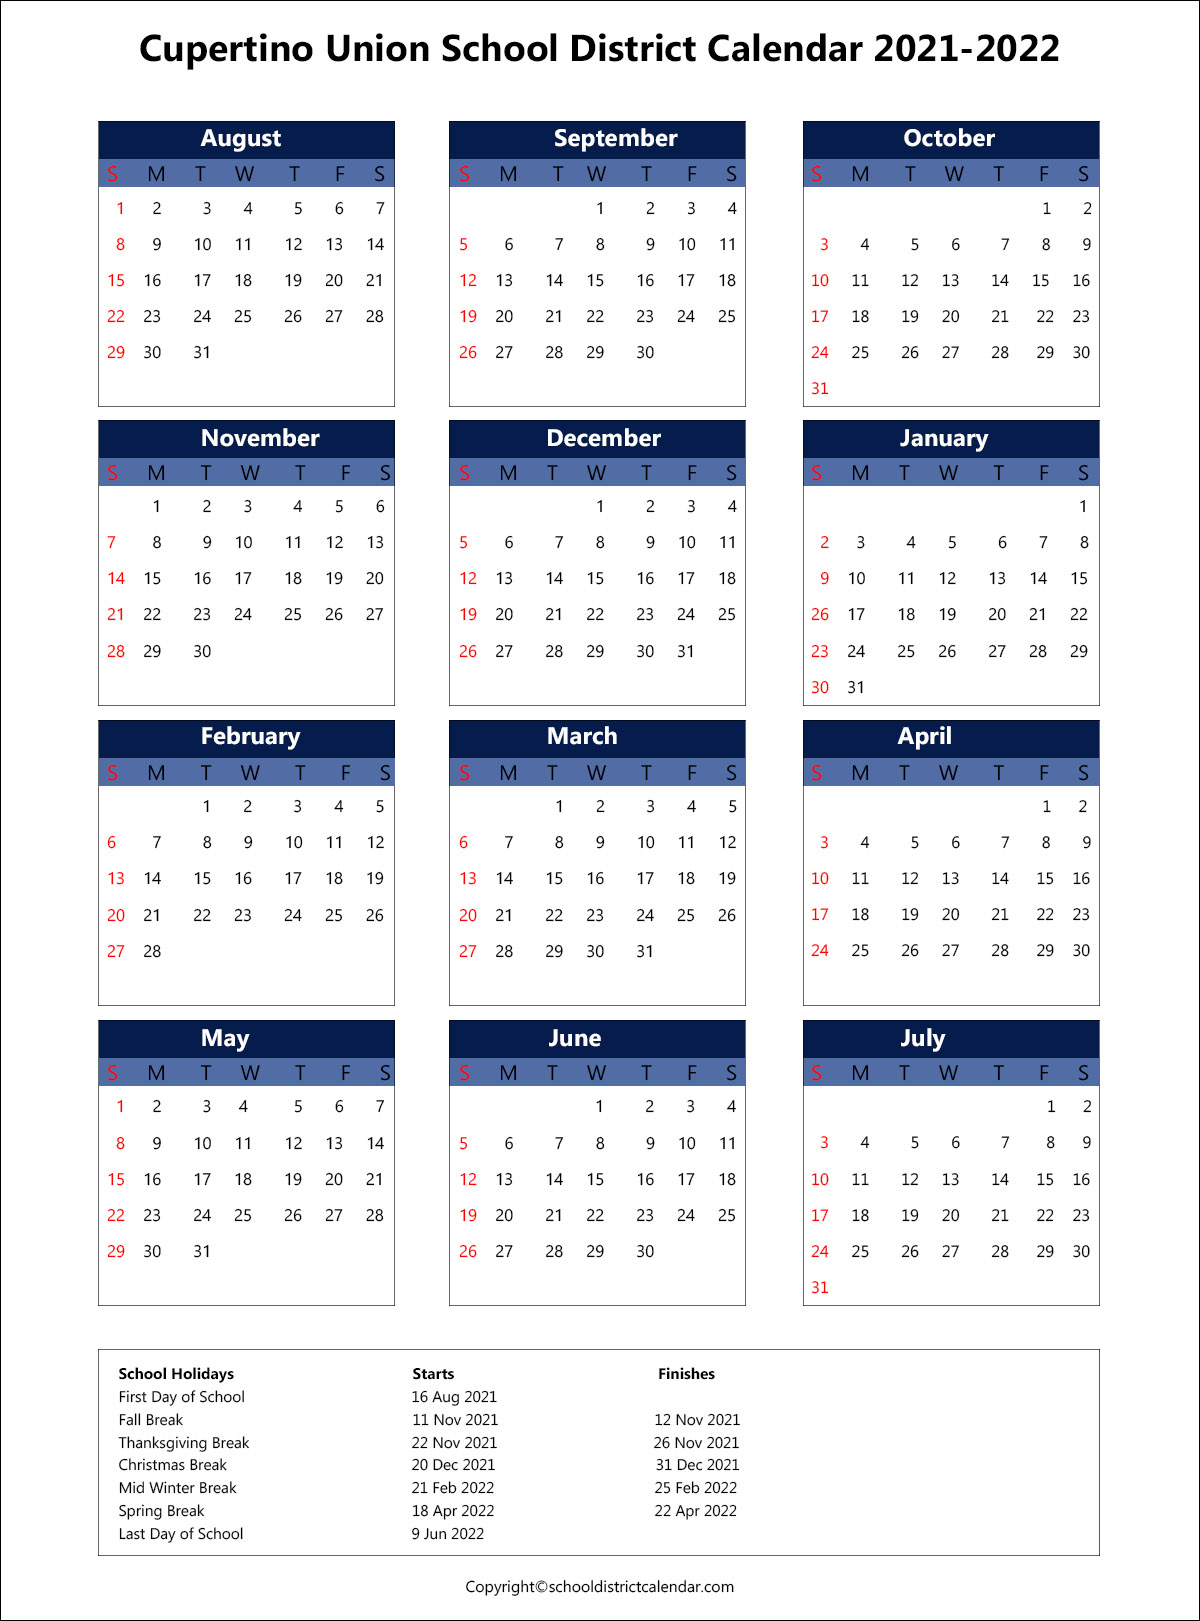 Cupertino Union School District Calendar 2021